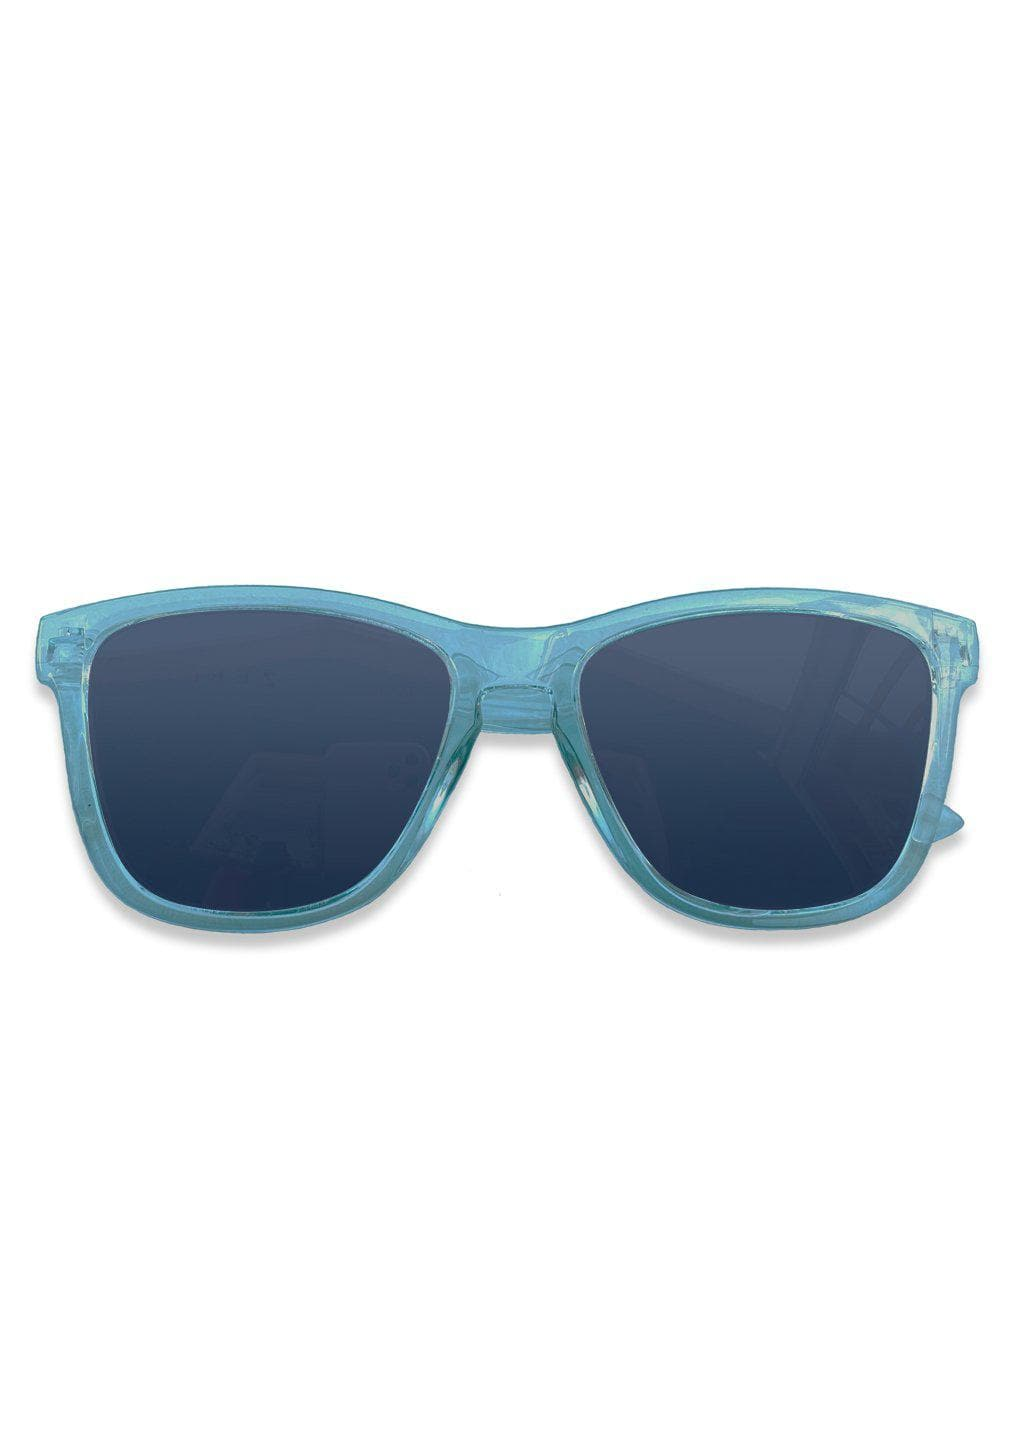 Our Mood V2 is an improved version of our last wayfarers. Plastic body for great quality and durabilty. This is Belize with blue frame and blue lenses. From the front.